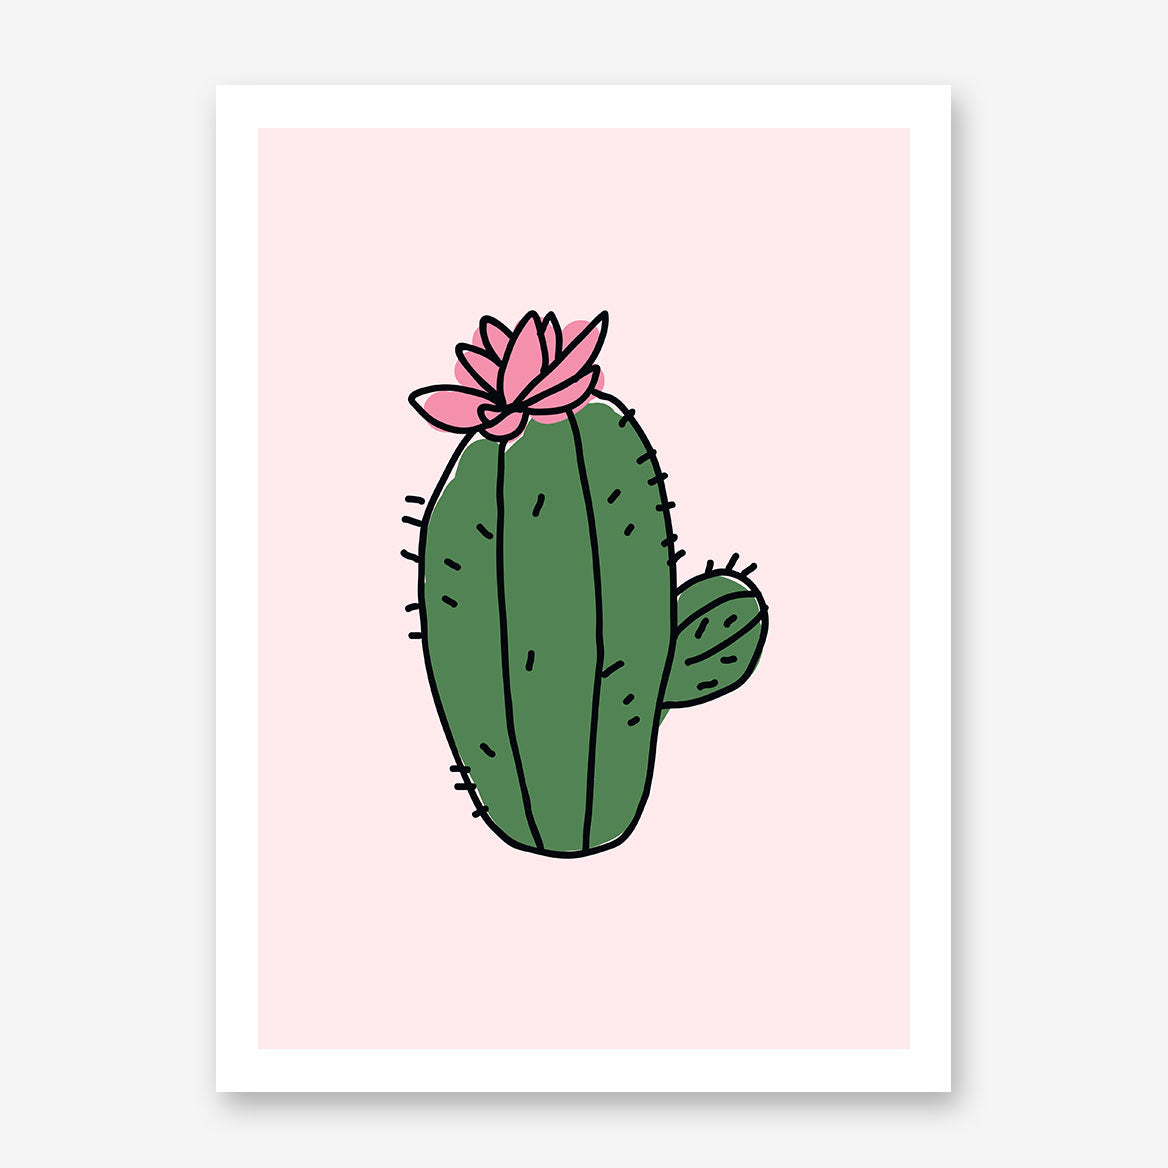 Poster print, with cute green cactus, on light pink background